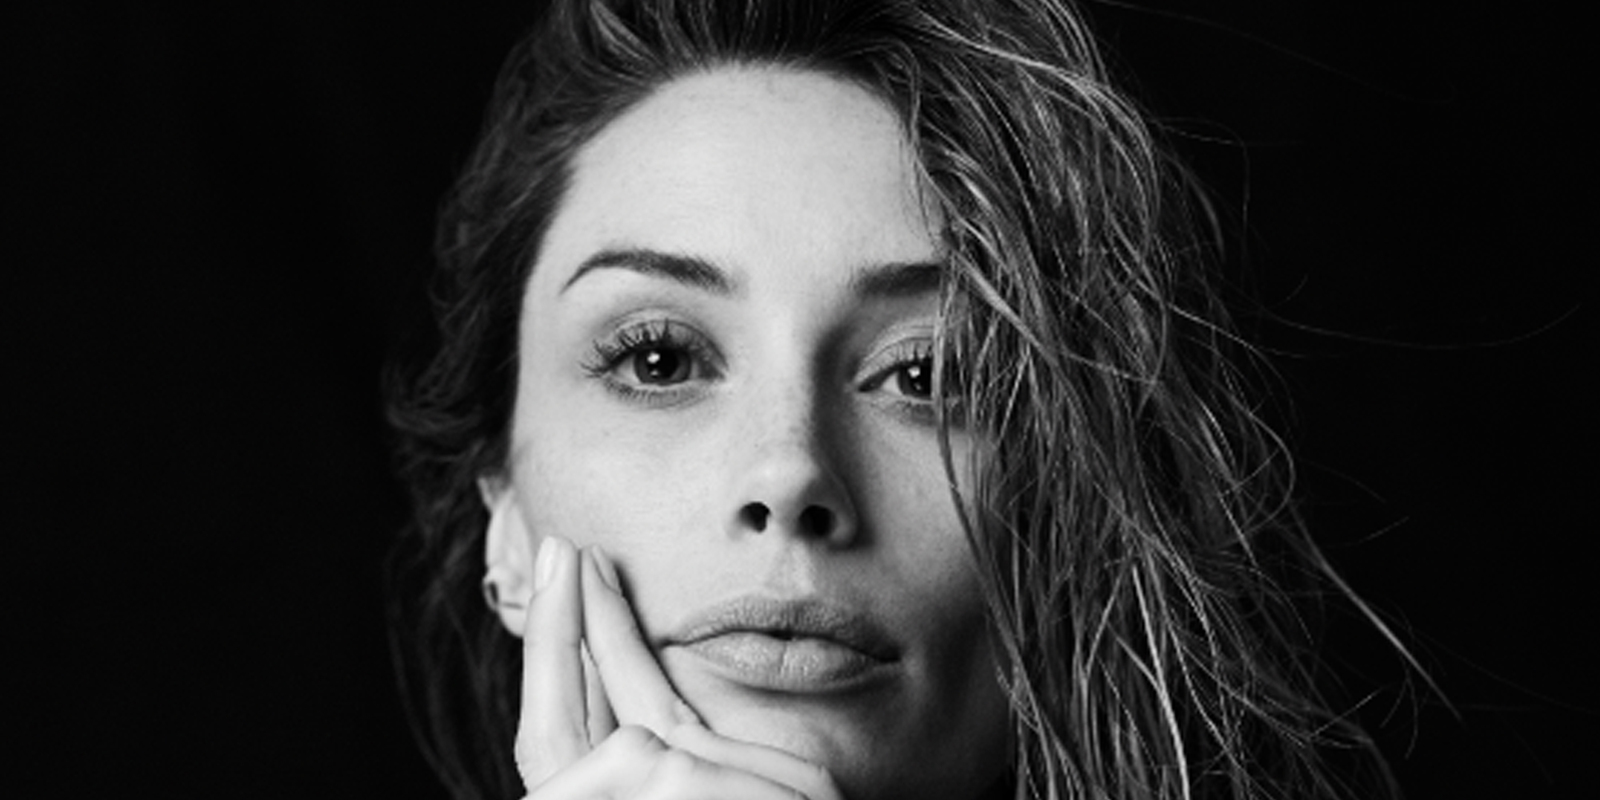 arielle vandenberg iconsarielle vandenberg alex turner, arielle vandenberg gif, arielle vandenberg vine, arielle vandenberg vk, arielle vandenberg instagram, arielle vandenberg adam levine, arielle vandenberg hair, arielle vandenberg listal, arielle vandenberg trap queen, arielle vandenberg aaron paul, arielle vandenberg 2017, arielle vandenberg justin bieber, arielle vandenberg icons, arielle vandenberg wdw, arielle vandenberg bio, arielle vandenberg mascara, arielle vandenberg facebook, arielle vandenberg greek, arielle vandenberg and matt cutshall together, arielle vandenberg alex turner vine